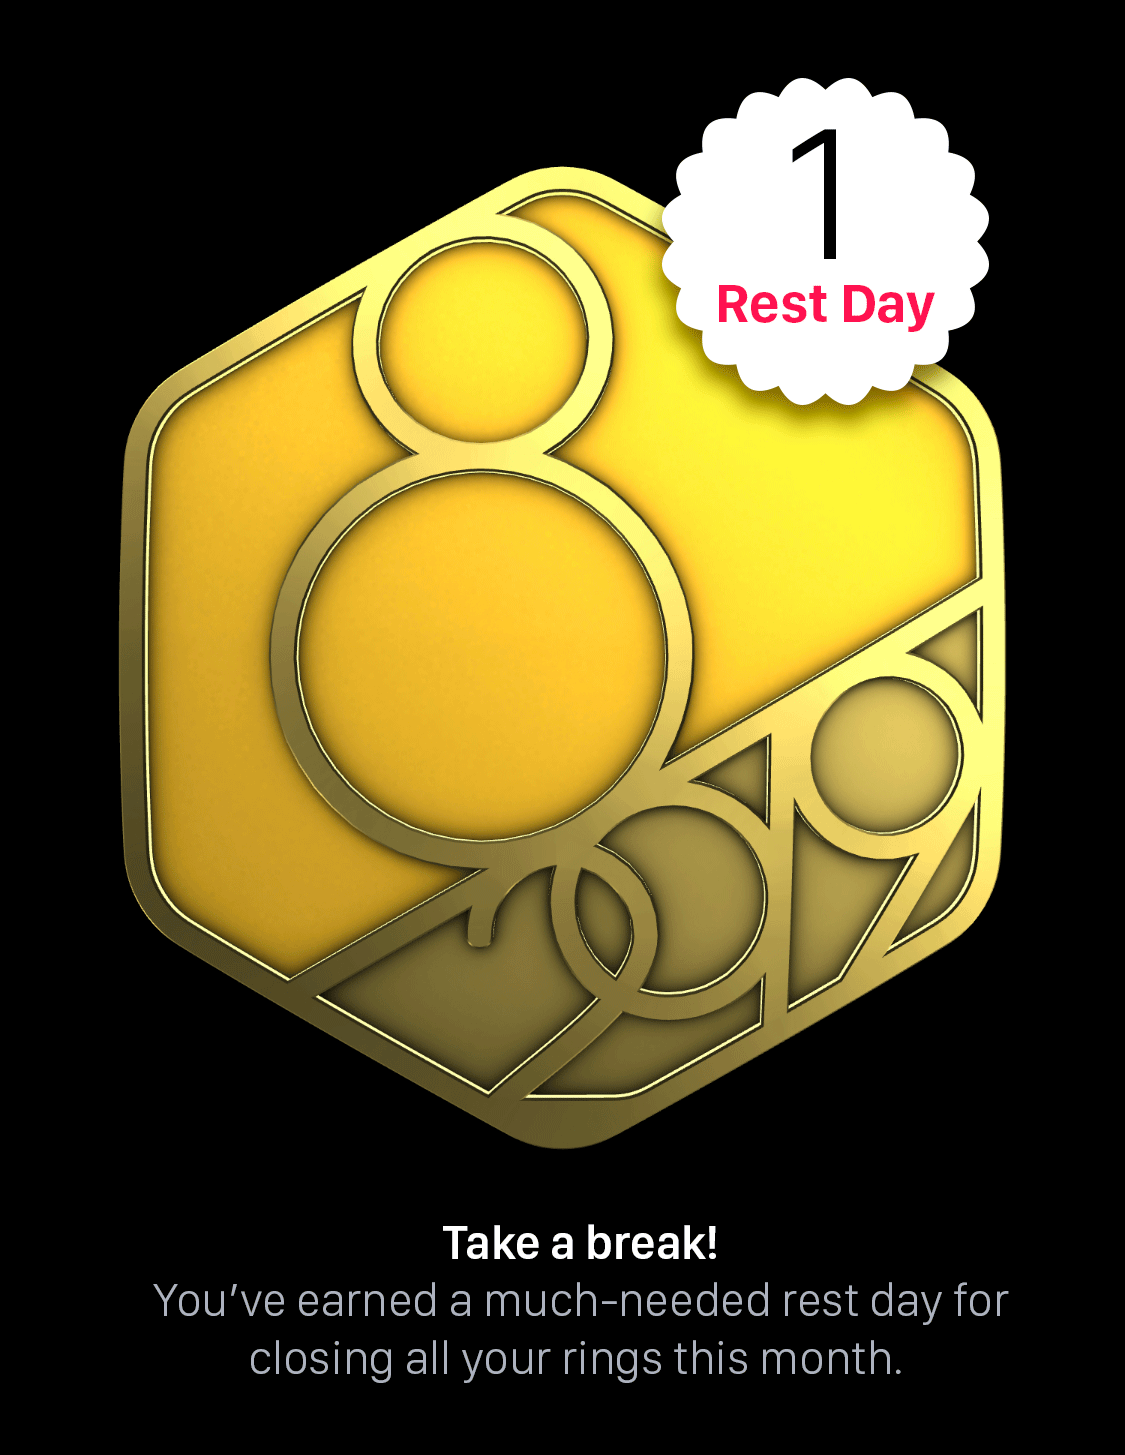 Concept for a perfect month badge that gives you a rest day as an award